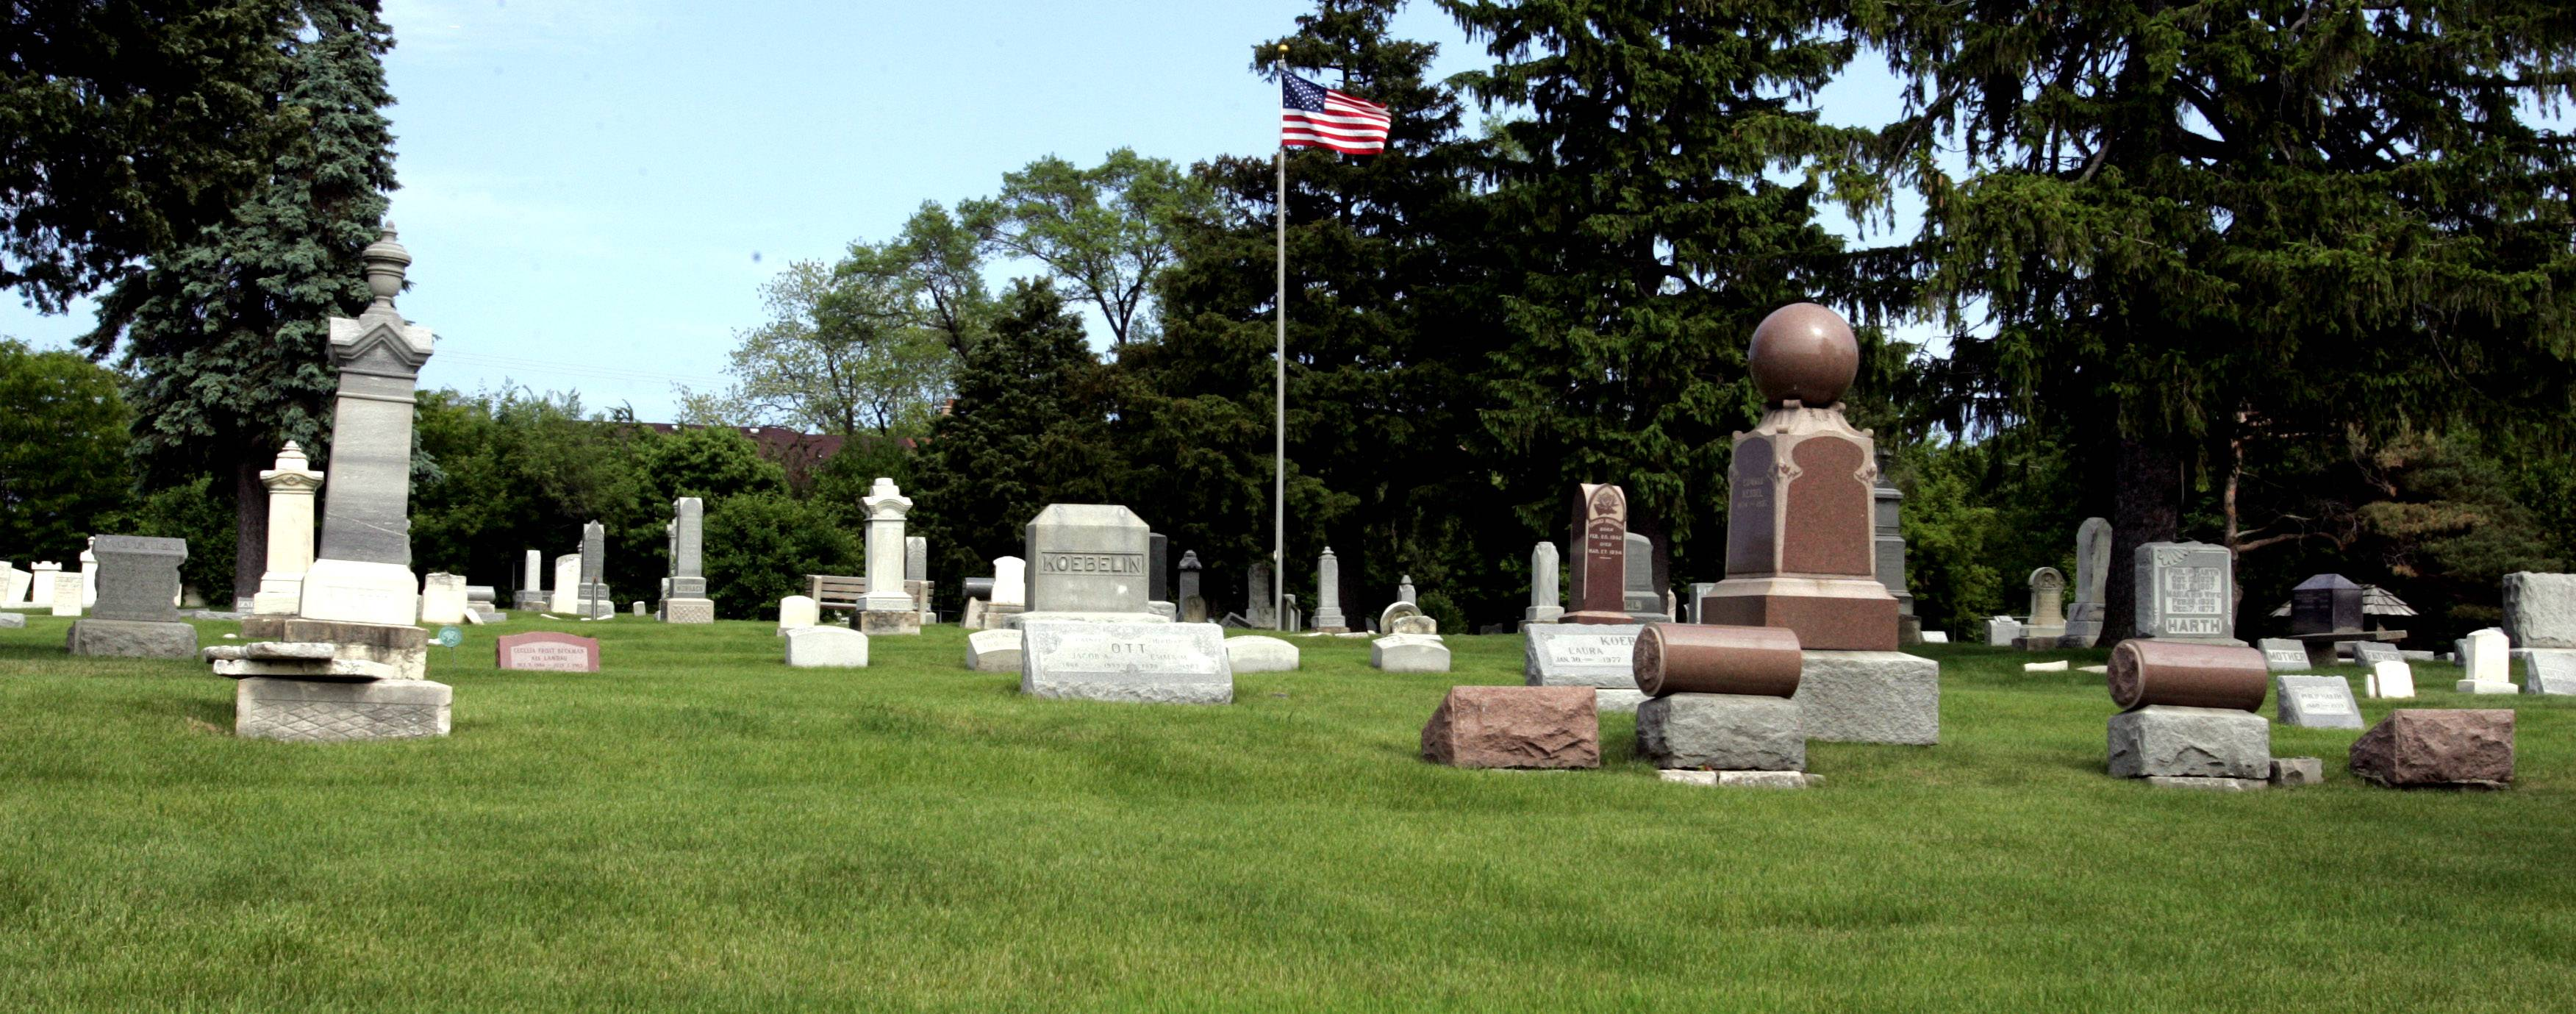 For the first time in years, Illinois will fund indigent burials under the new state budget.